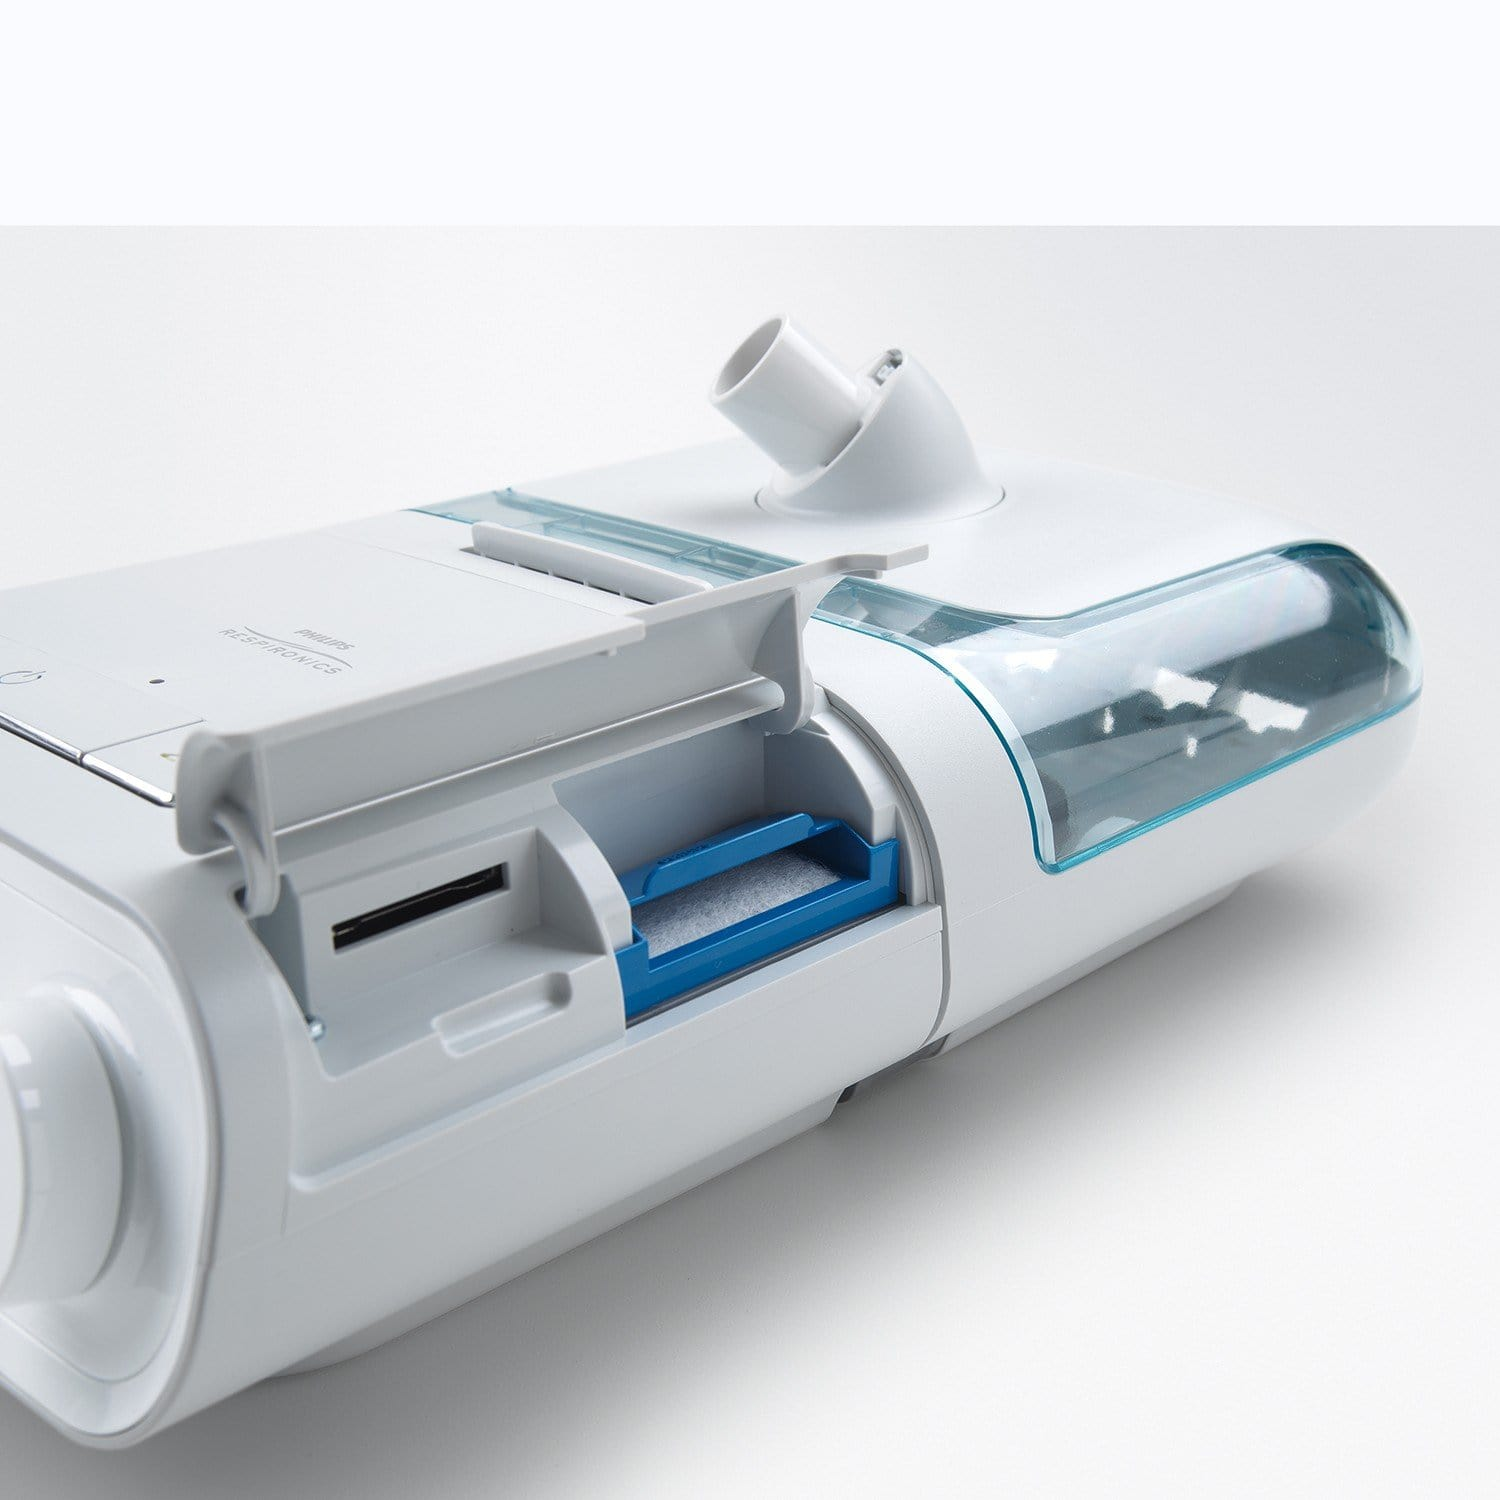 Philips Respironics Dreamstation - Fixed CPAP machine with humidifier & heated tube